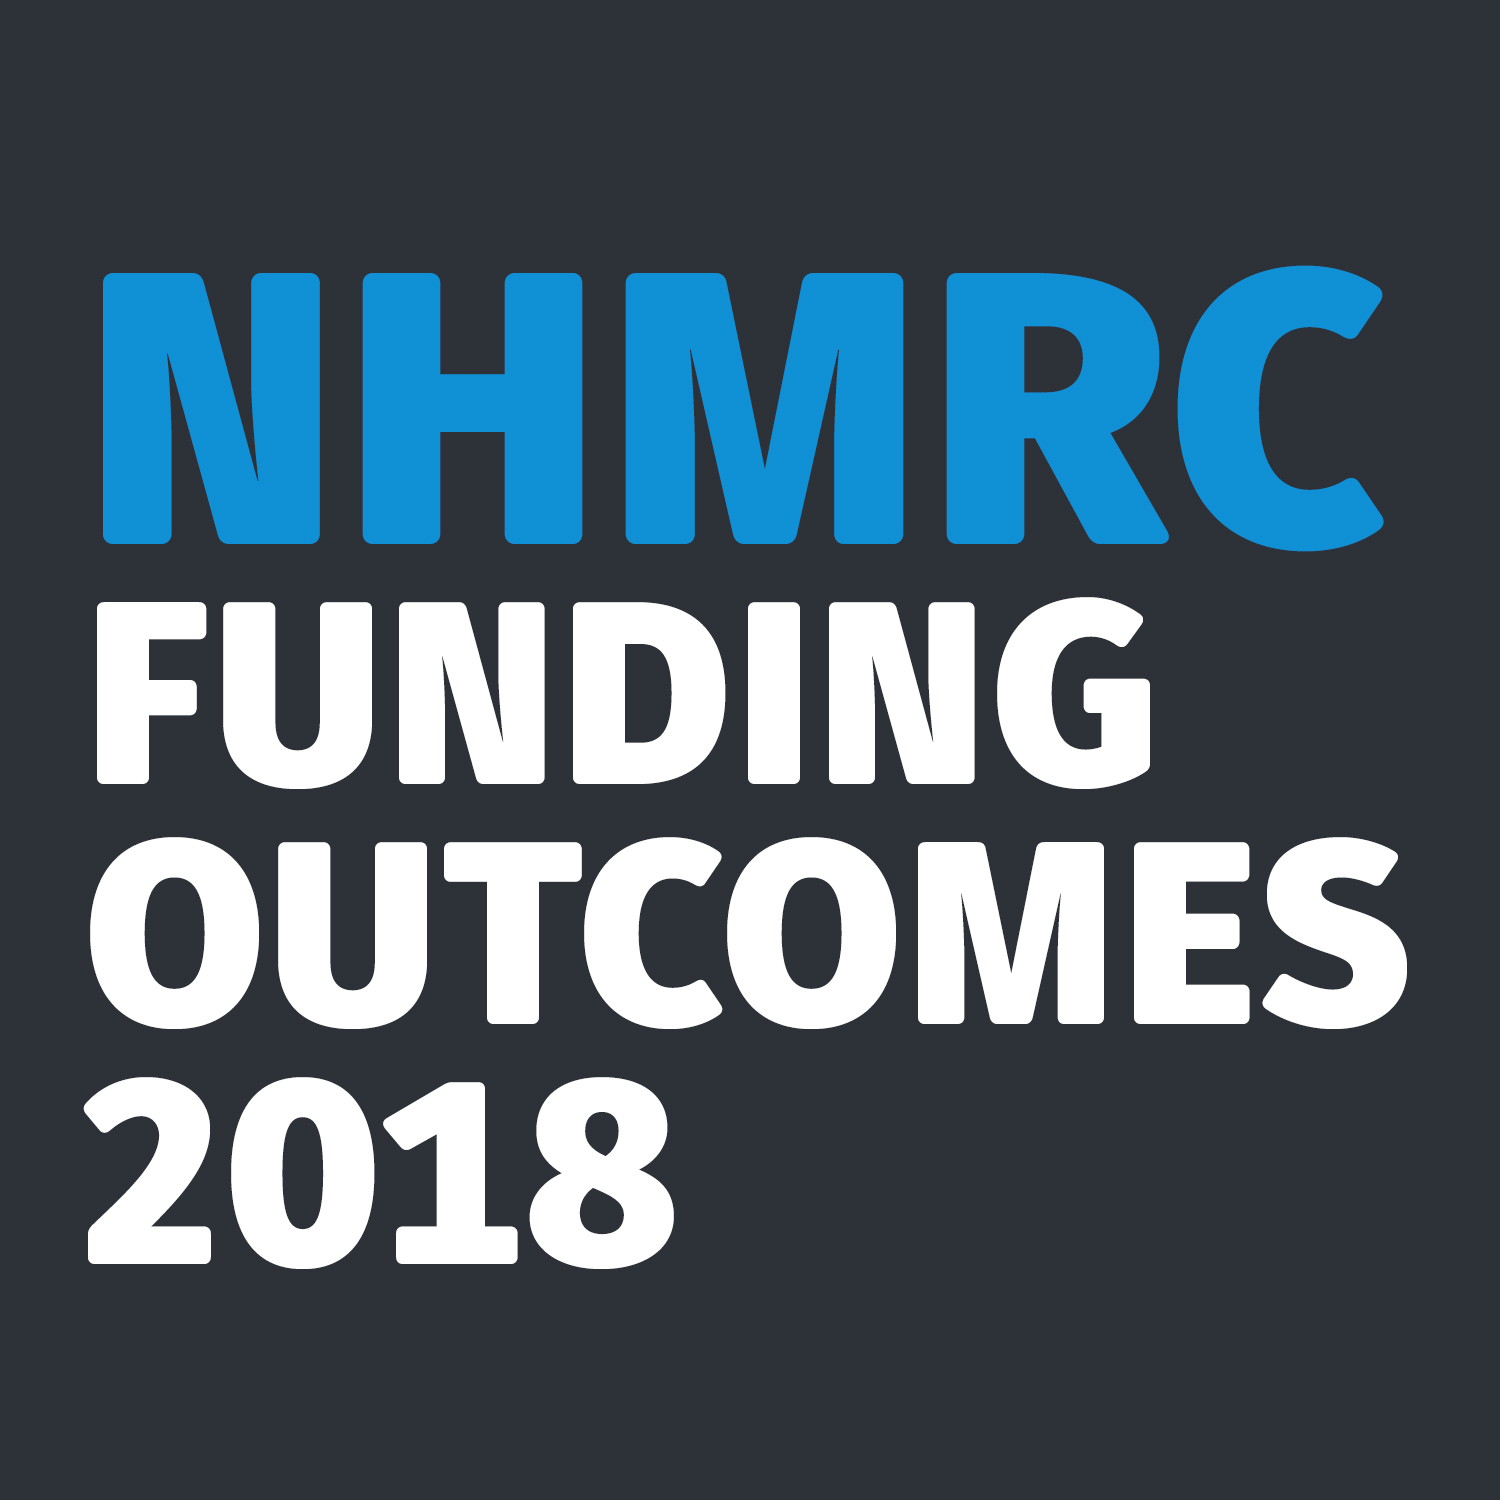 NHMRC 2018 funding outcomes